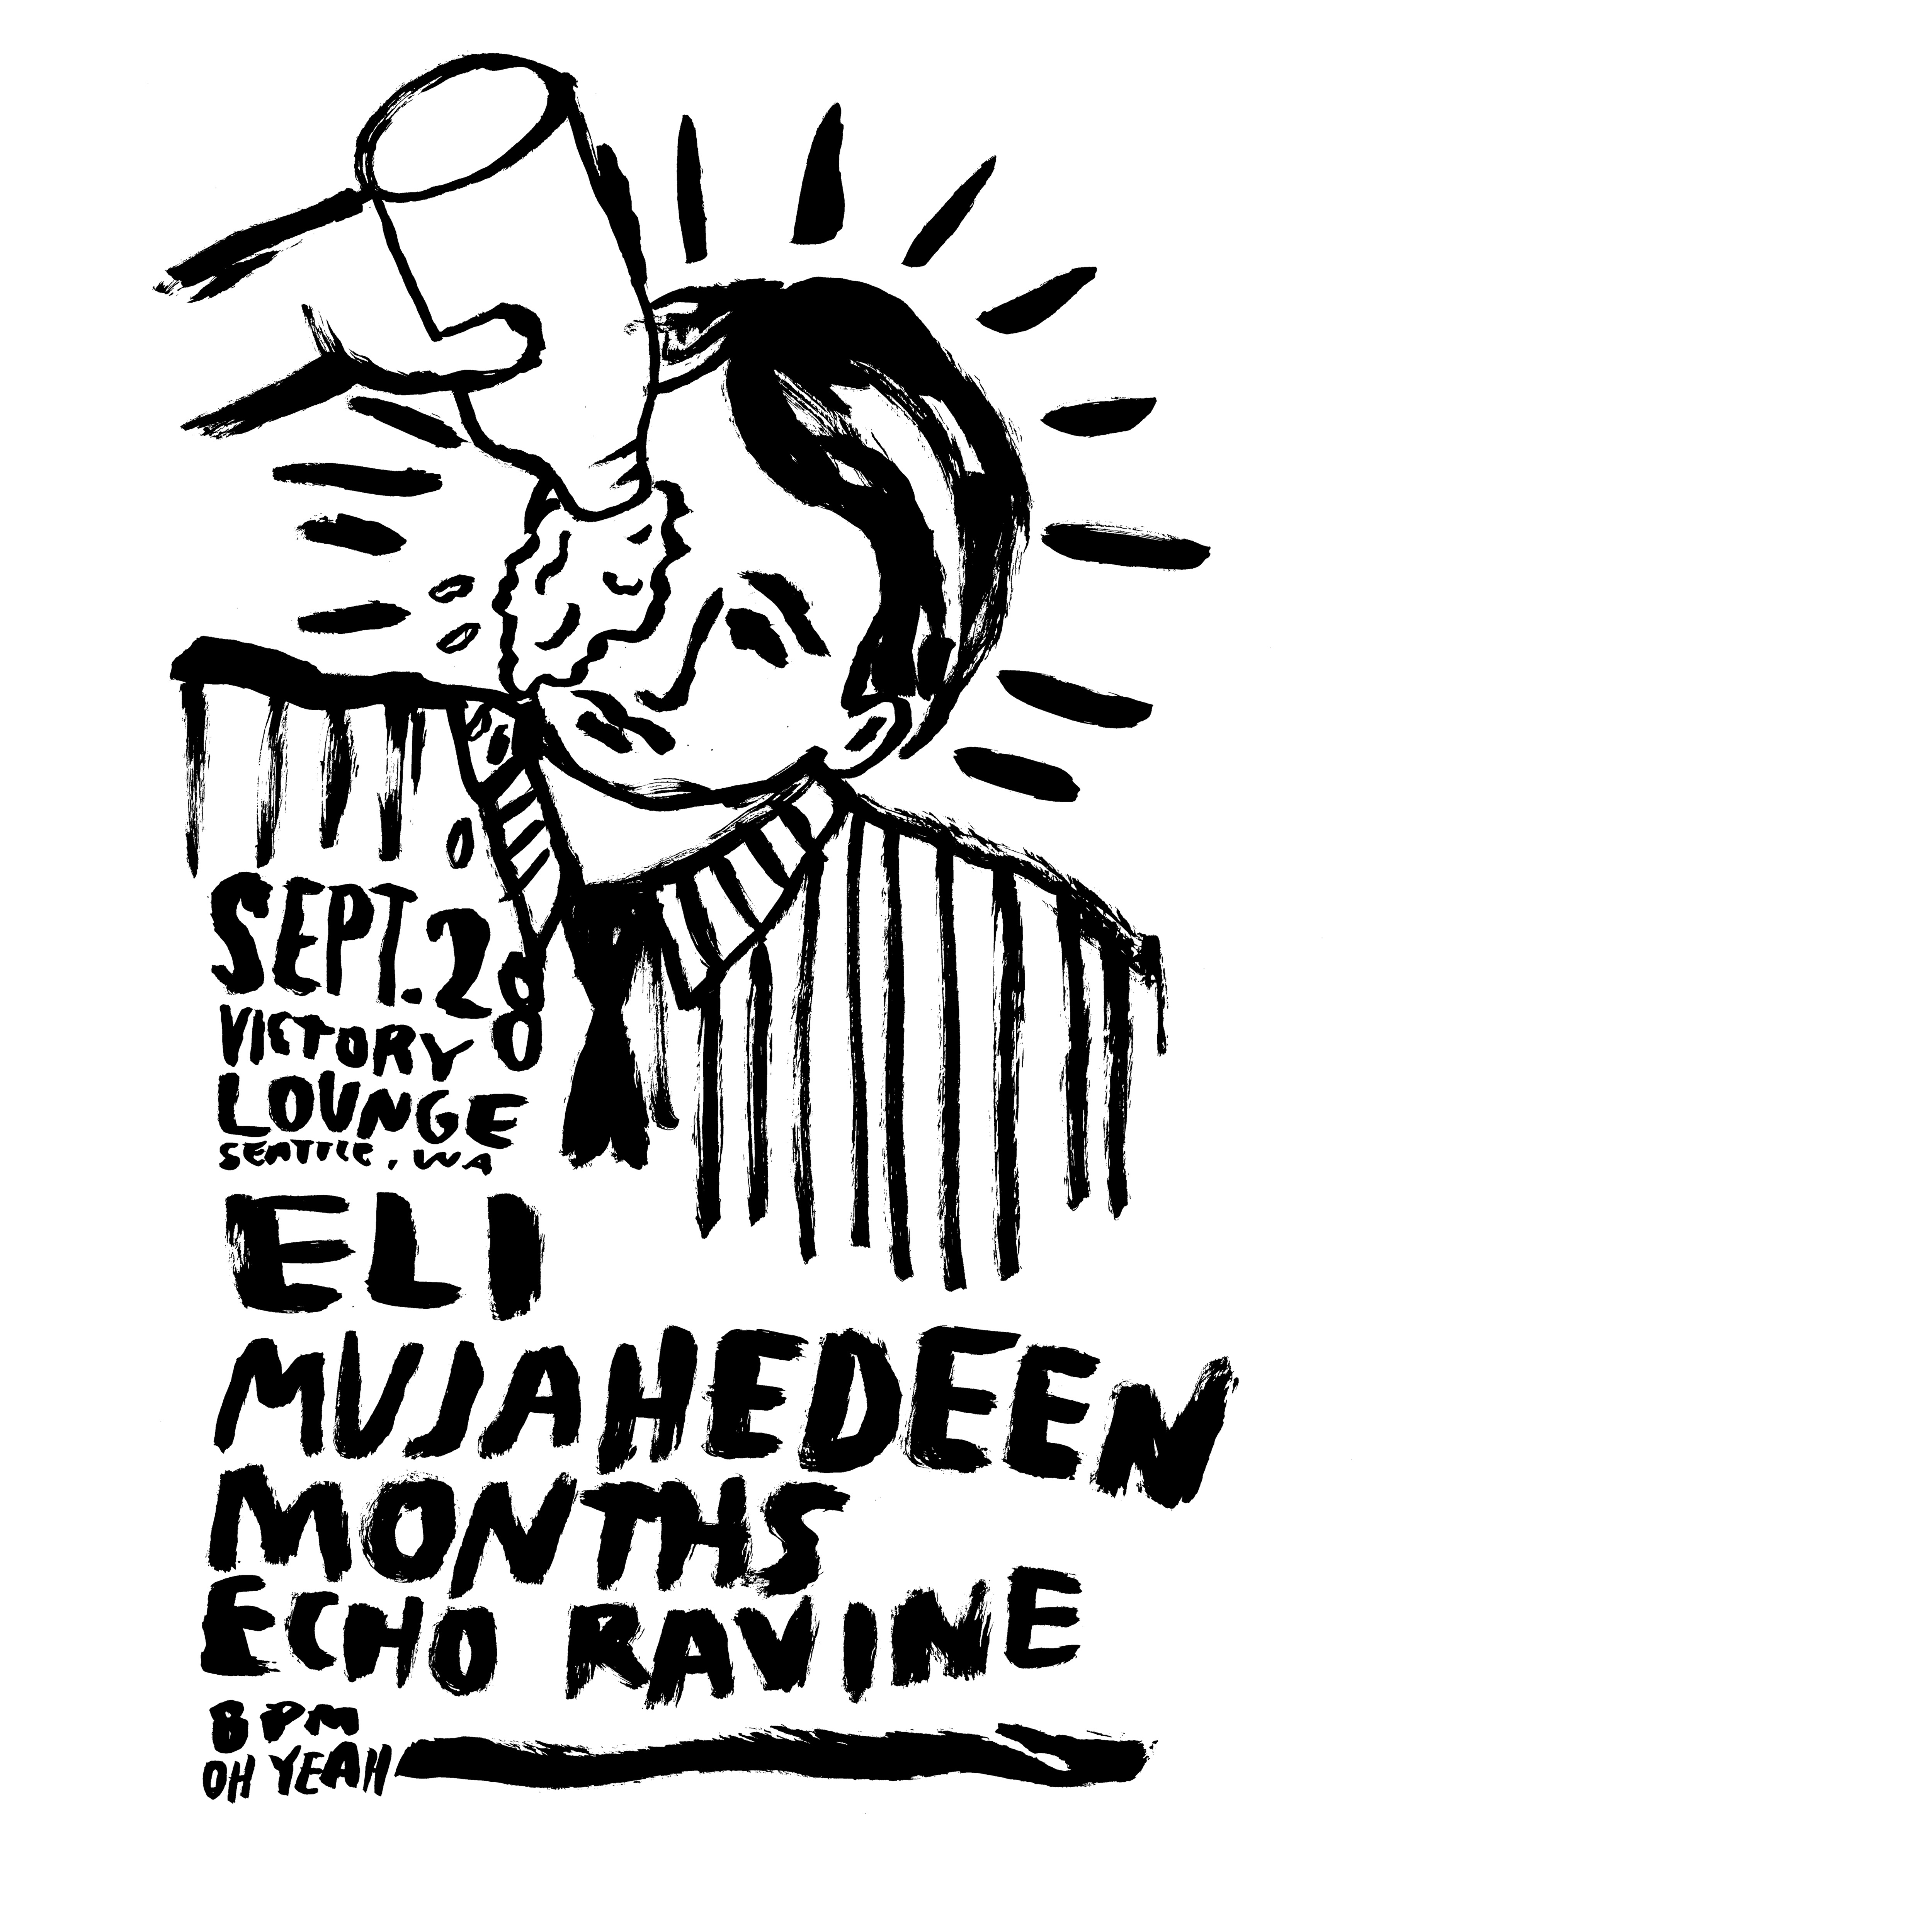 months at victory lounge in seattle on thursday september 28 with echo ravine, mujahedeen, and eli